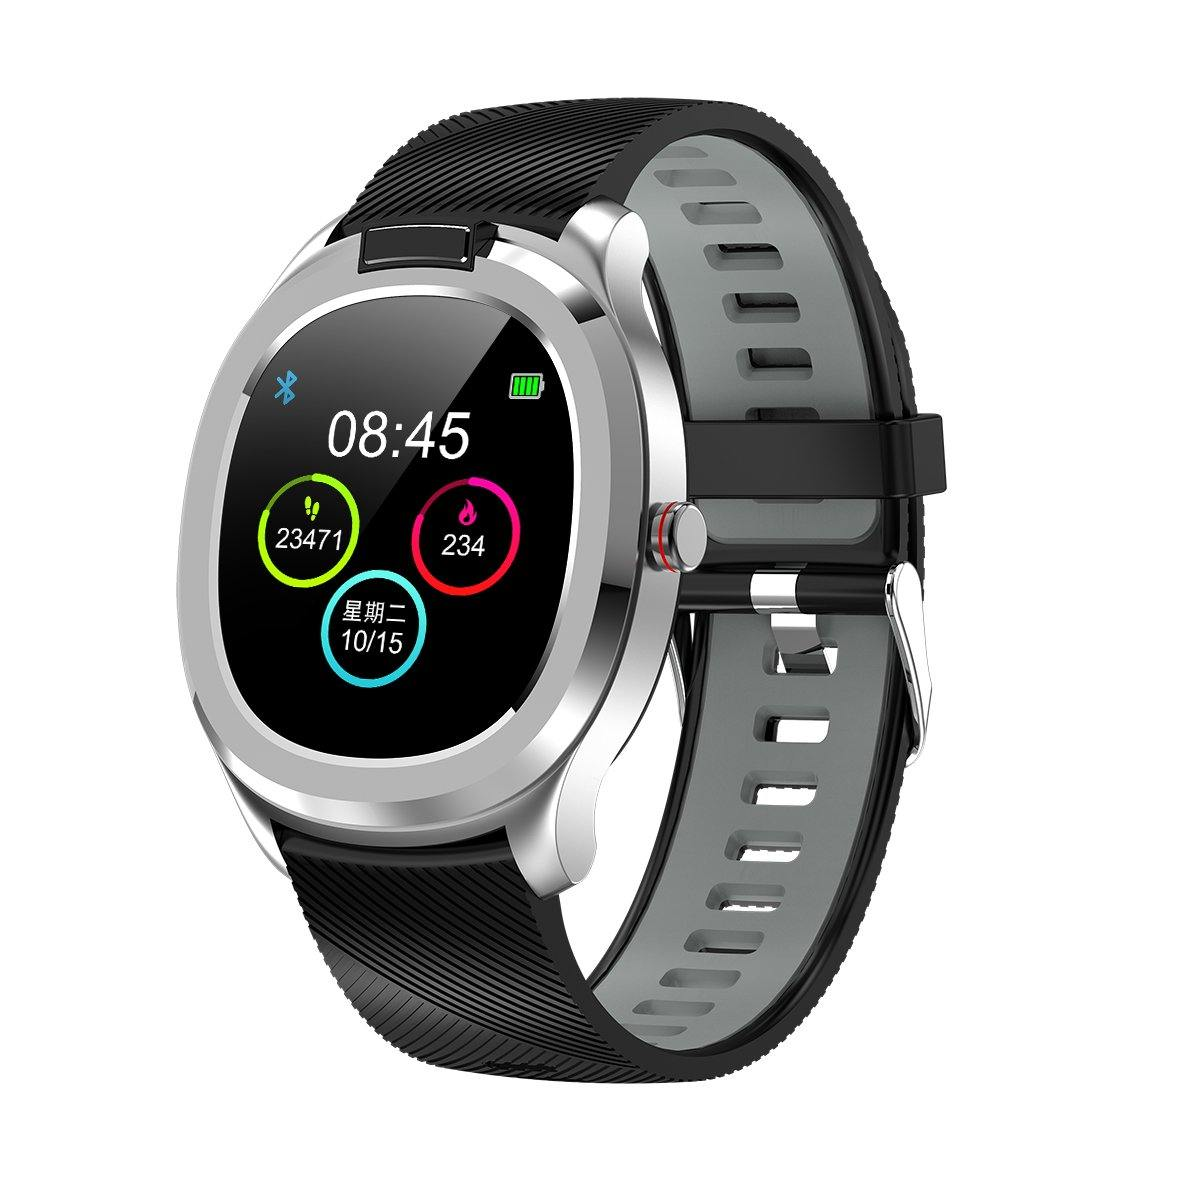 Microwear T01 Fitness/Smartwatch - Black/Grey Silicone - Smael South Africa